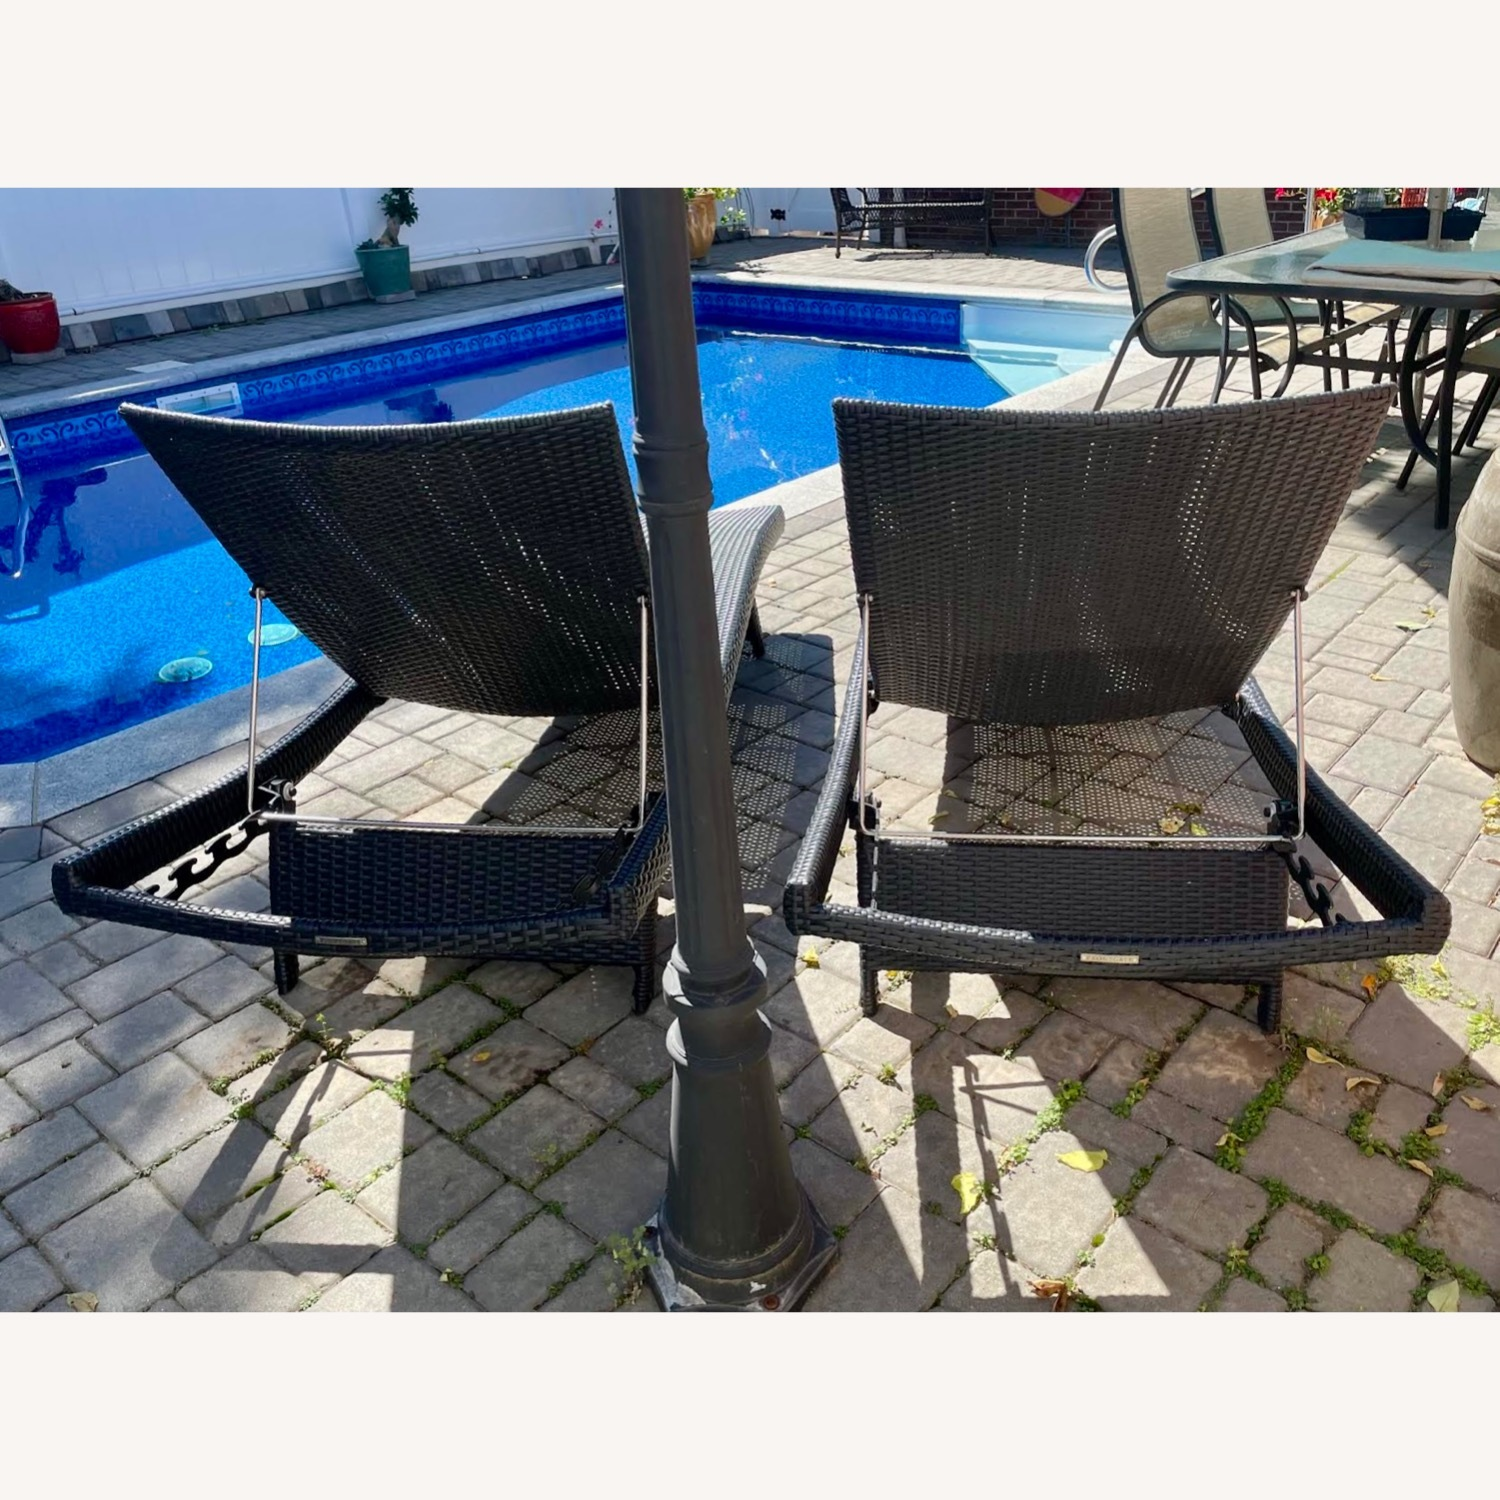 Original Balencia Black Chaise Lounges, Set of Two - image-4